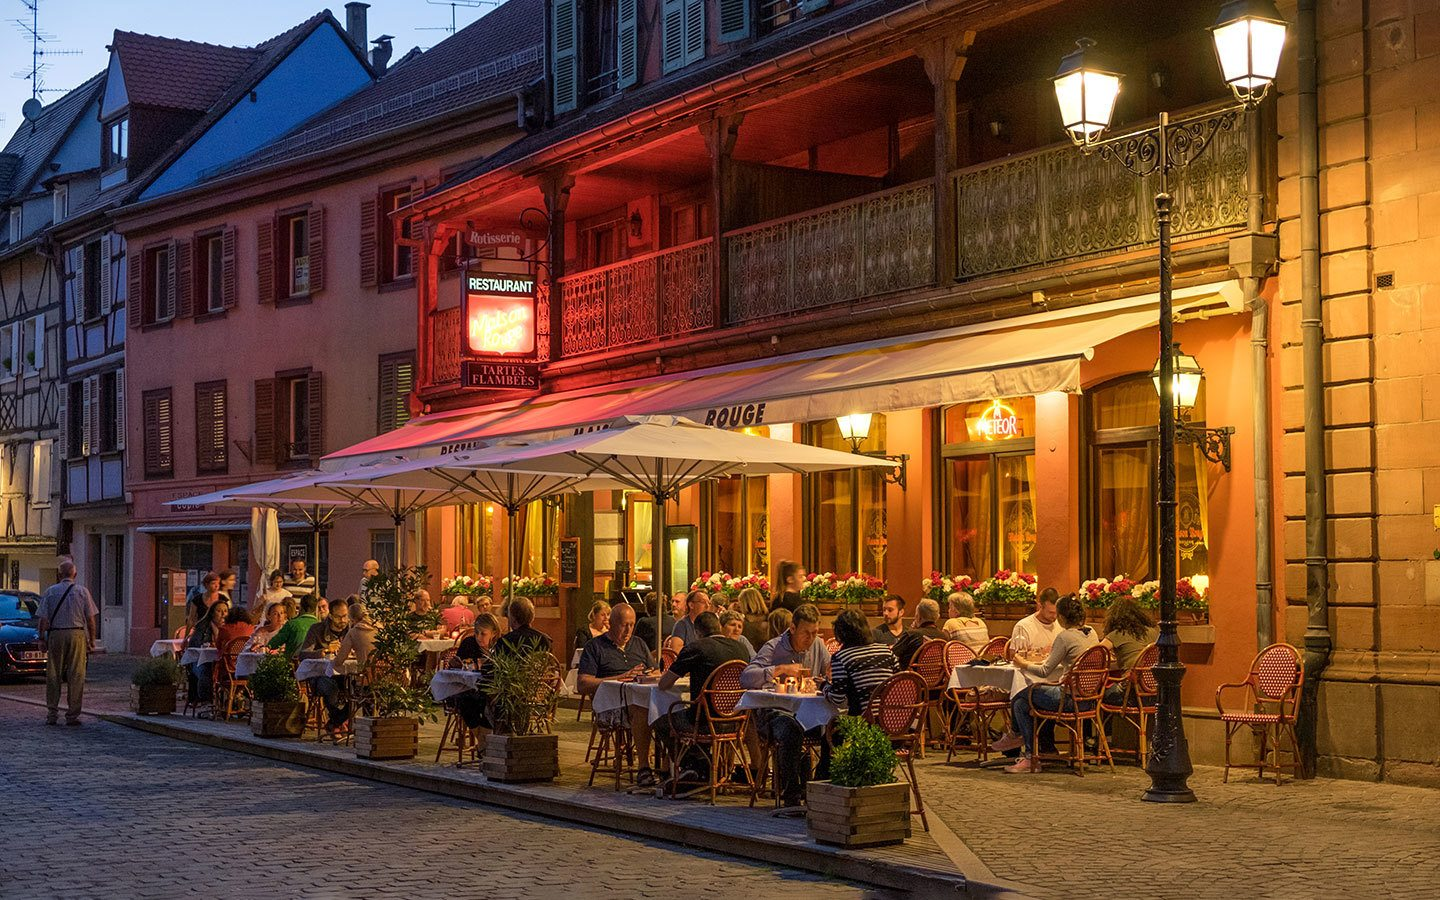 Diners outside a restaurant in Colmar, Alsace